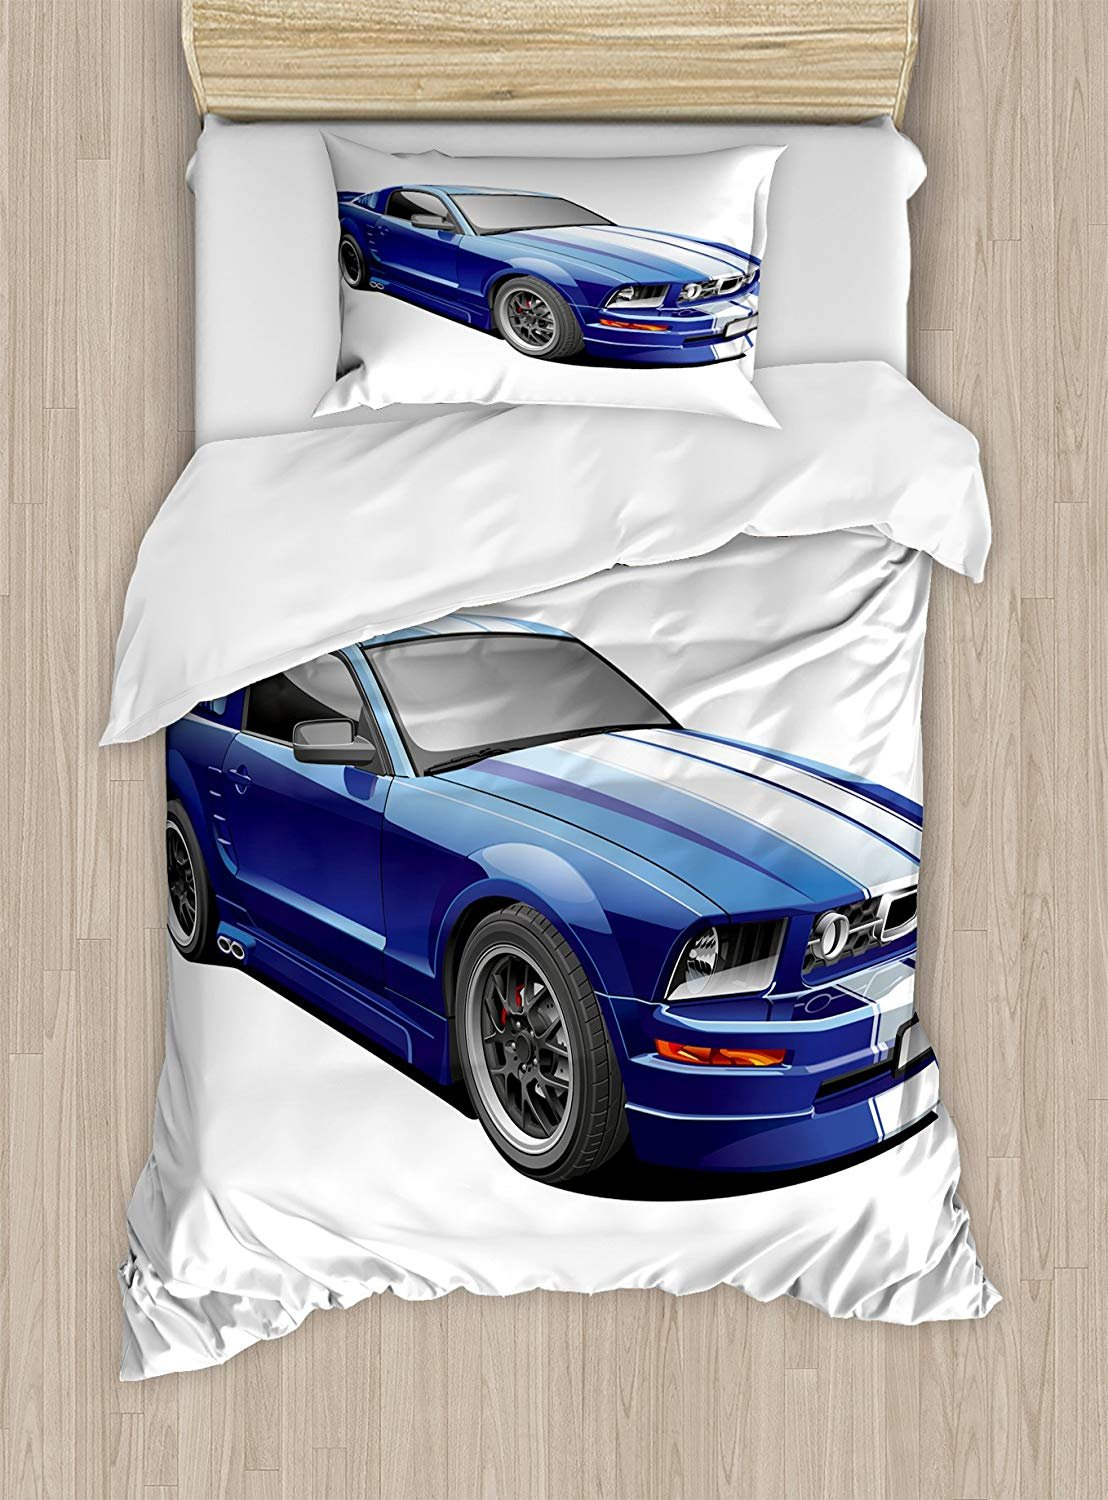 Twin XL Extra Long Bedding Set, Teen Room Duvet Cover Set, American Auto Racing Theme Car Sports Competition Speed Winner Boys Kids Graphic, Cosy House Collection 4 Piece Bedding Sets